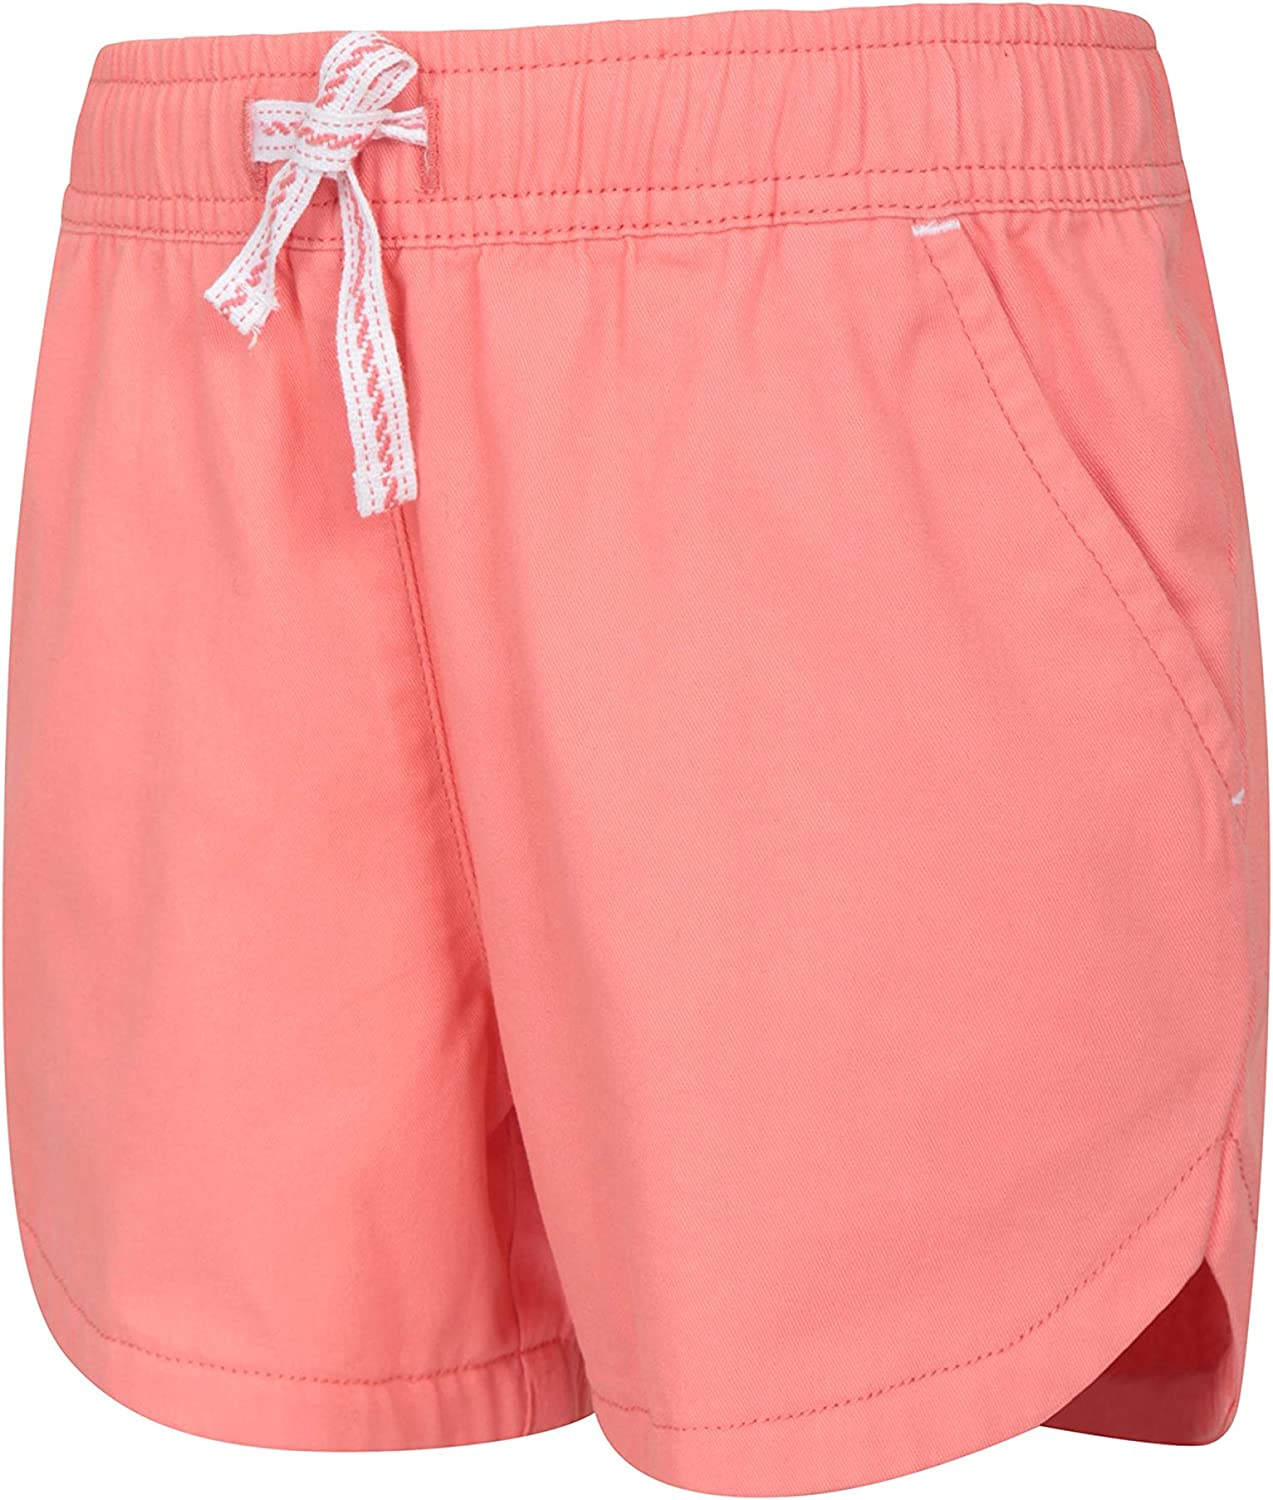 Mountain Warehouse Waterfall Girls Shorts Easy Care Short Pants Breathable Holiday Shorts Ideal Casual Clothes When Travelling Summer Hot Pants Cotton Kids Shorts